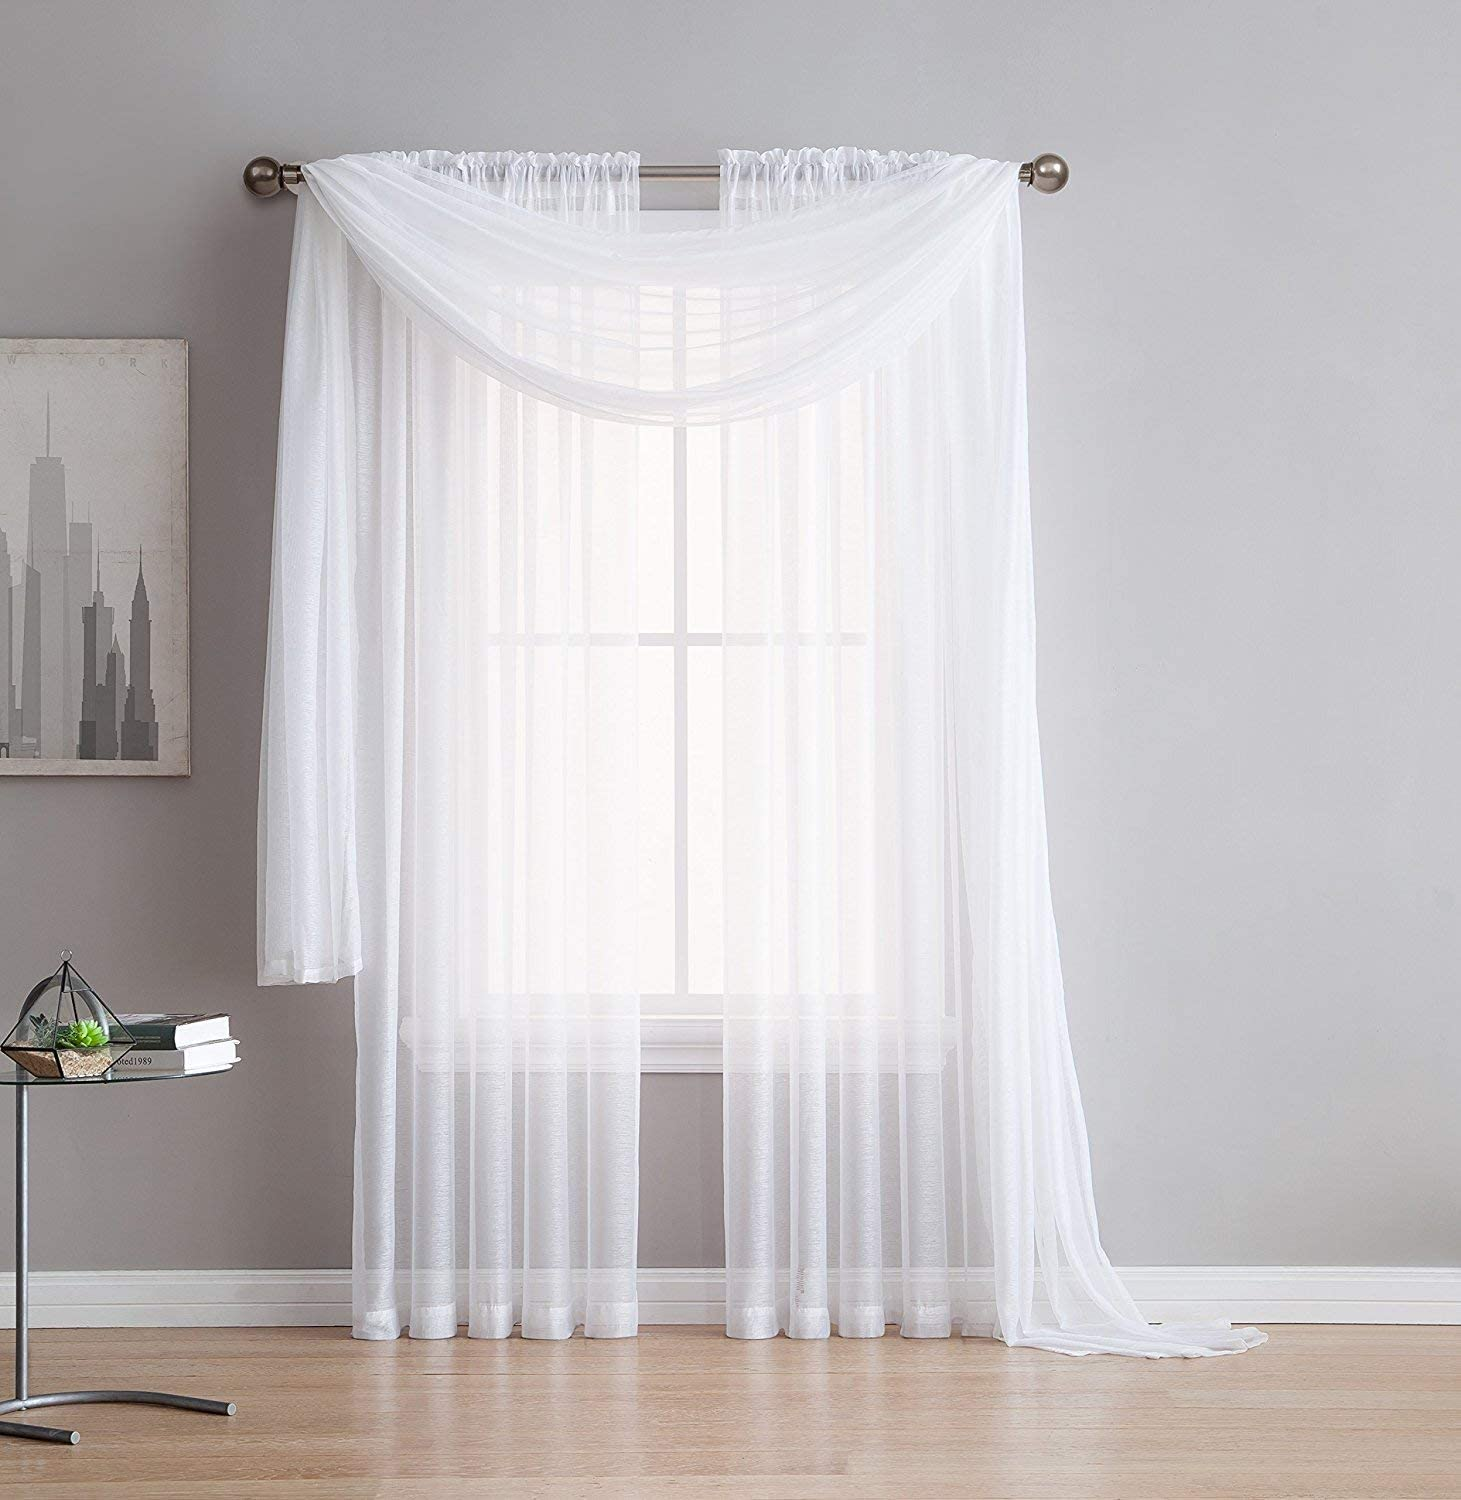 """ASATEX Light Filtering Semi Sheer Exta Long Length 54 by 216 Inch White Window Scarfs are Perfect As Decoration for Weddings, Backdrops, Canopy Beds, Costumes & Holiday Parties. ROM 54"""" x 216"""" White"""